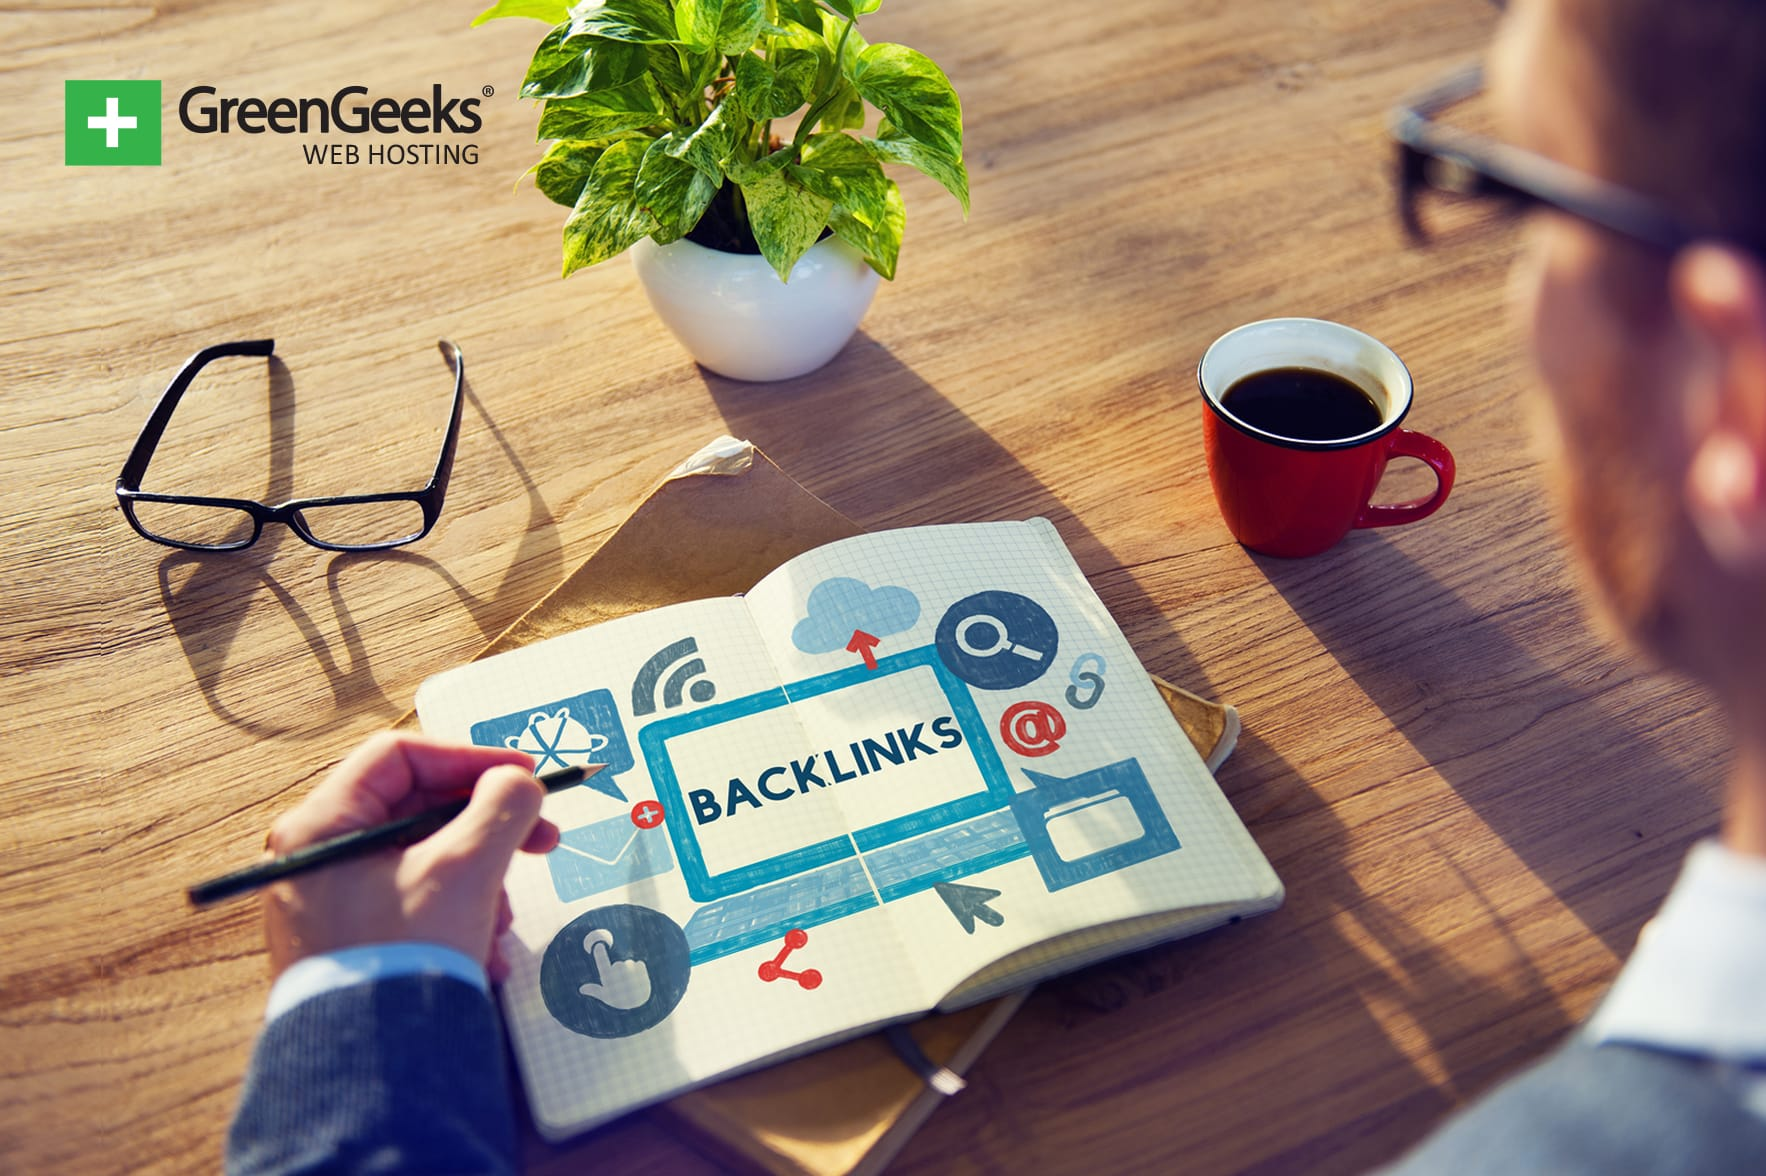 Backlinks Tools